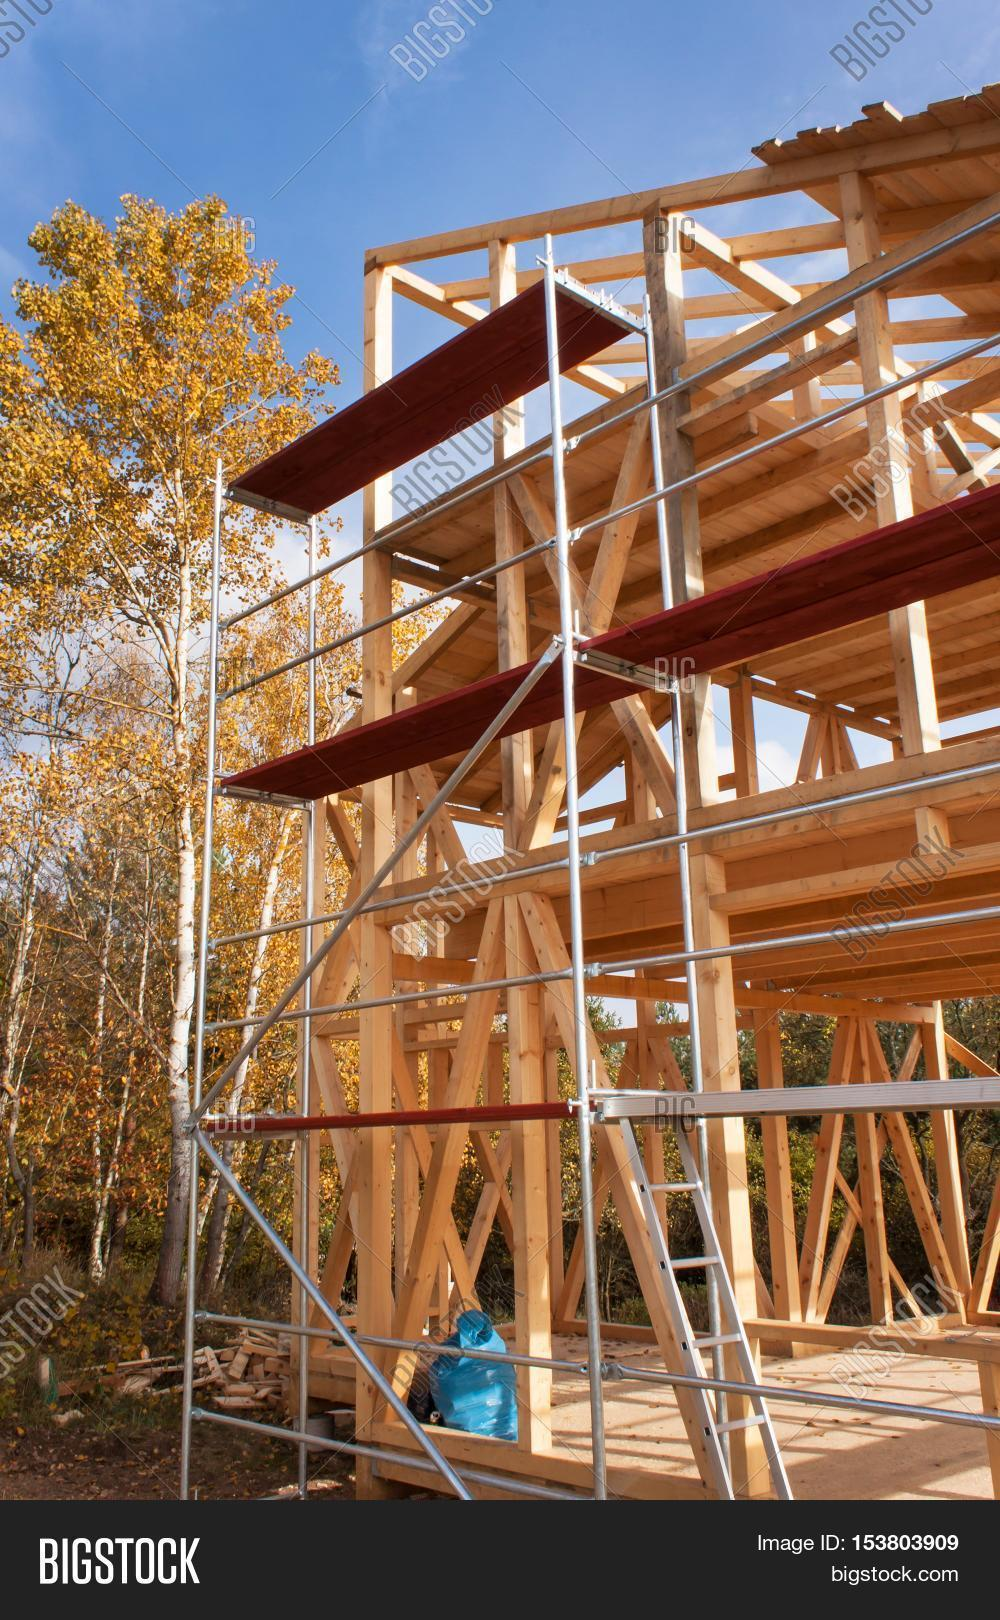 Metal scaffolding around unfinished image photo bigstock for Process of building a new house